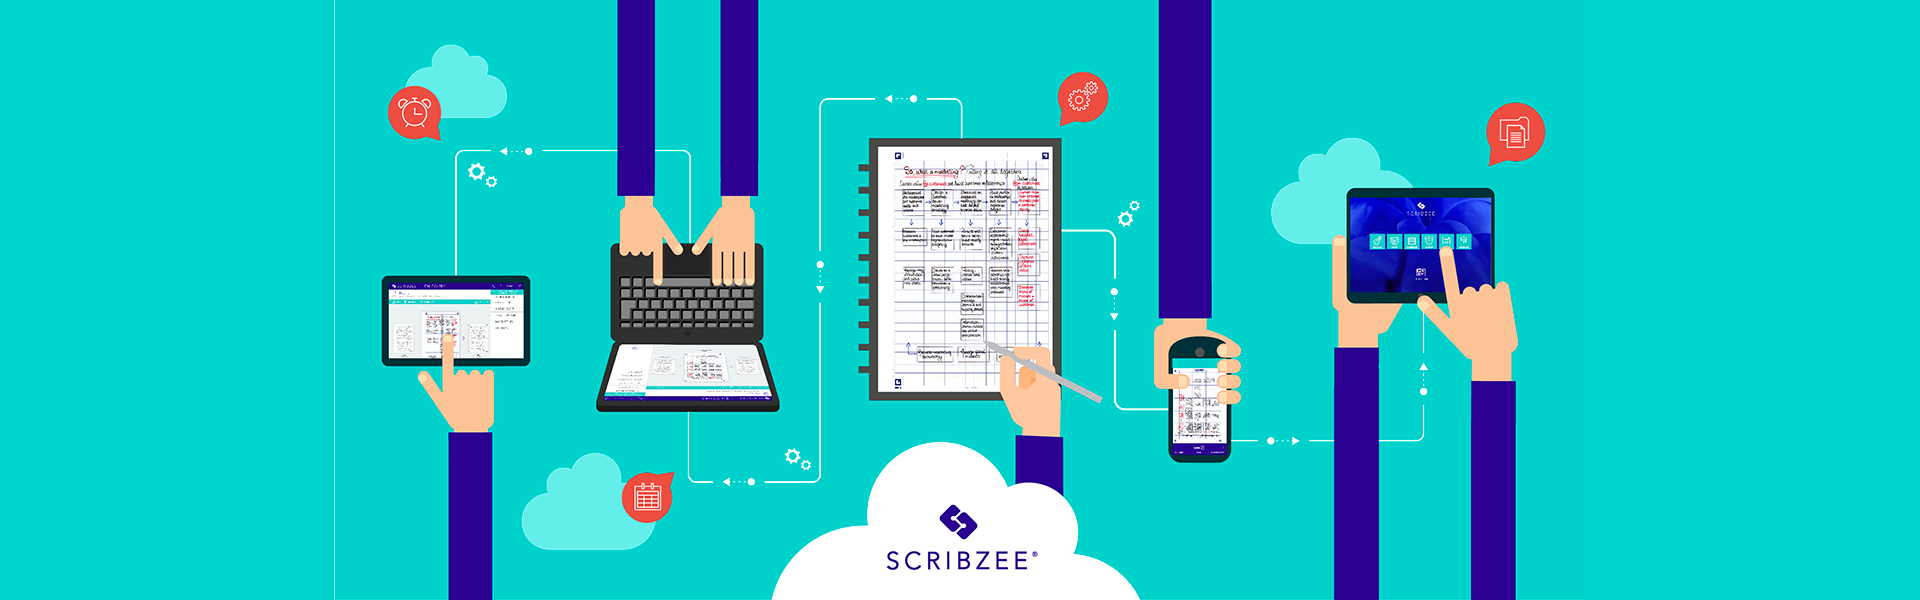 SCRIBZEE App, scan, save, access, share your handwritten notes